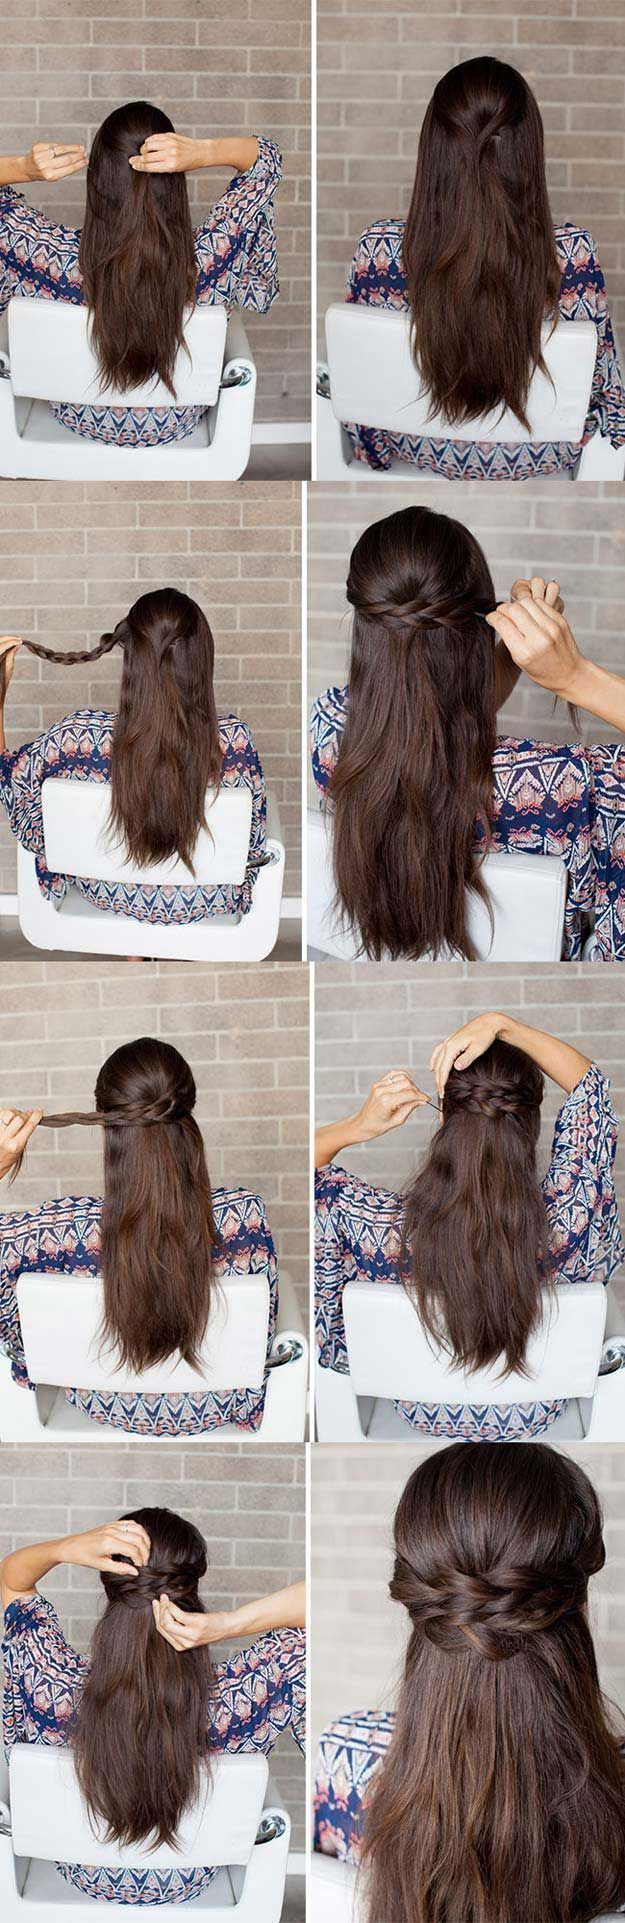 Amazing Half-Up Half-Down Hairstyles for Long Hair - Braided ..., # Amazing # for